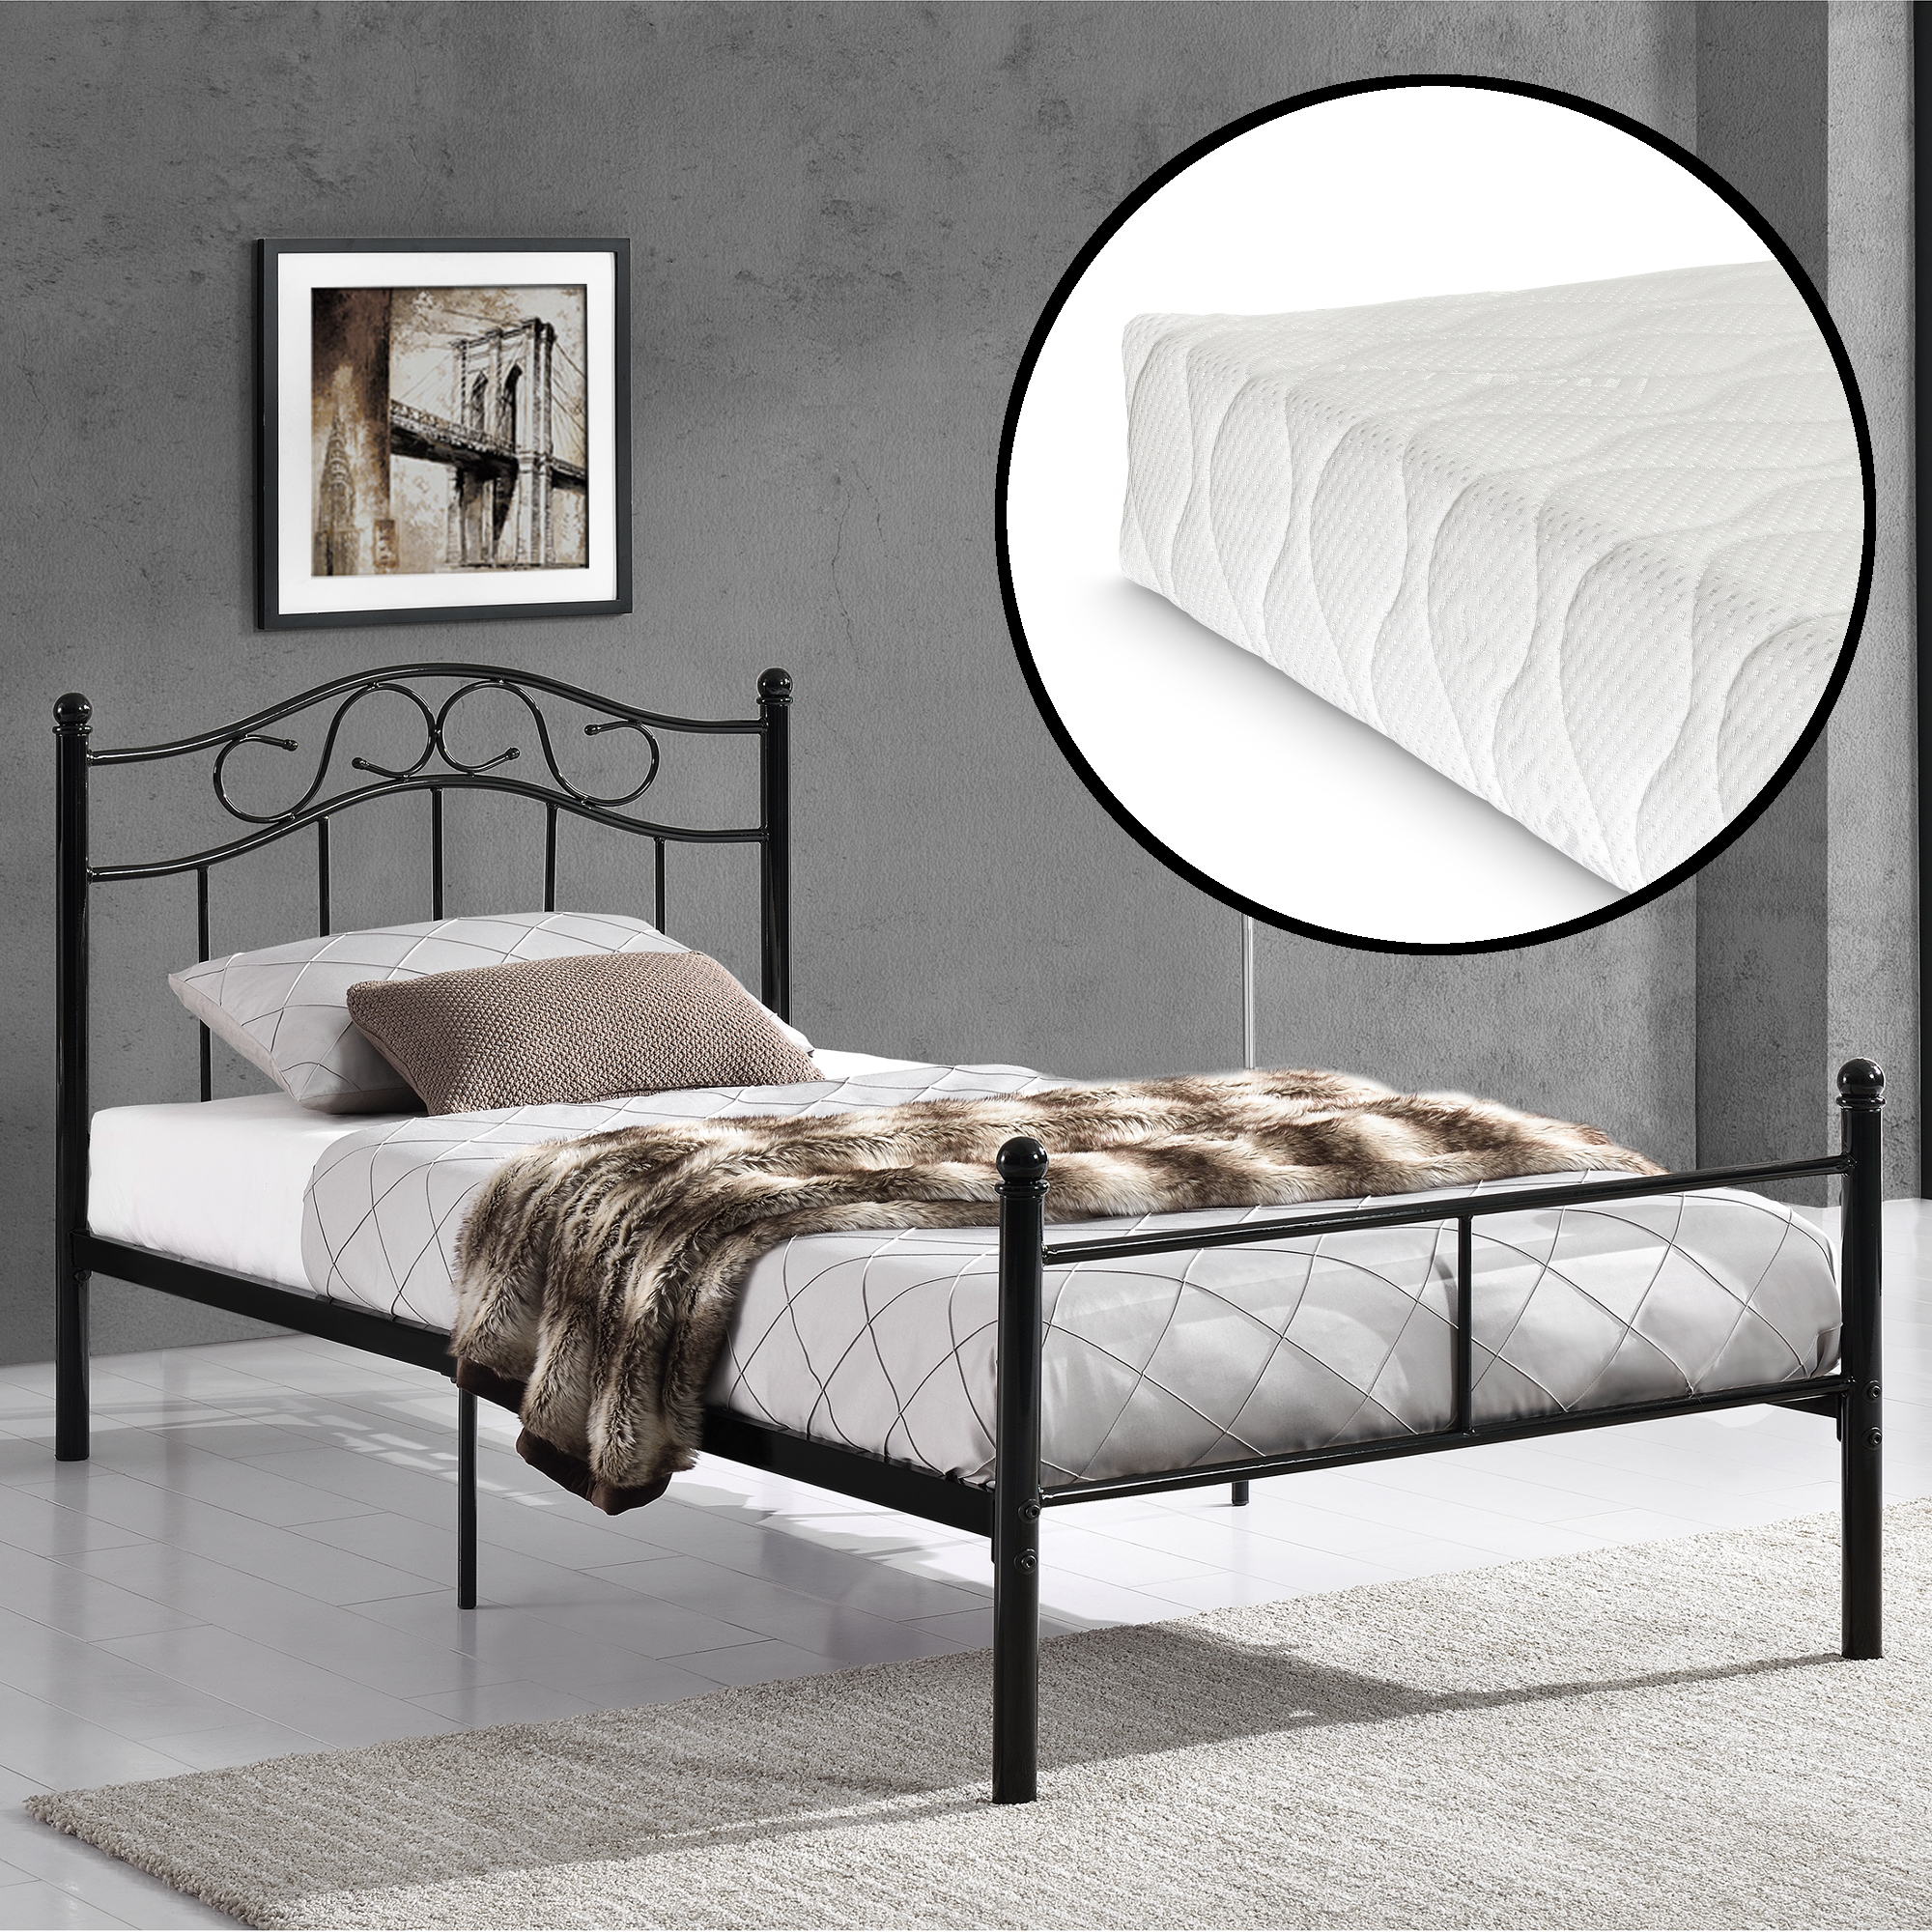 metallbett 90x200 schwarz mit matratze bett jugendbett metall kopfteil ebay. Black Bedroom Furniture Sets. Home Design Ideas